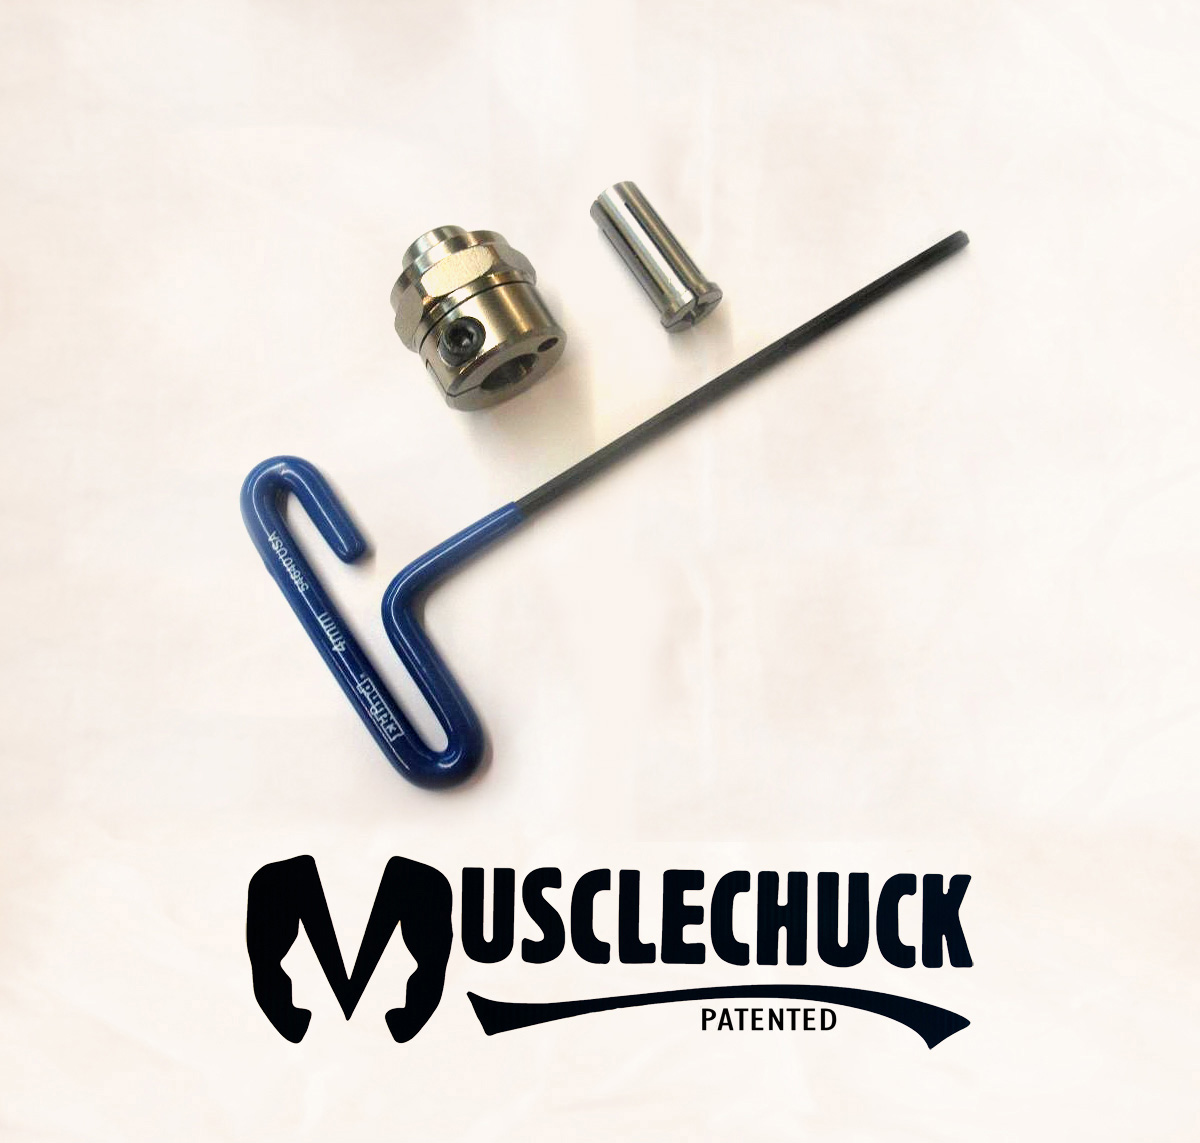 Musclechuck Assembly Combo 1